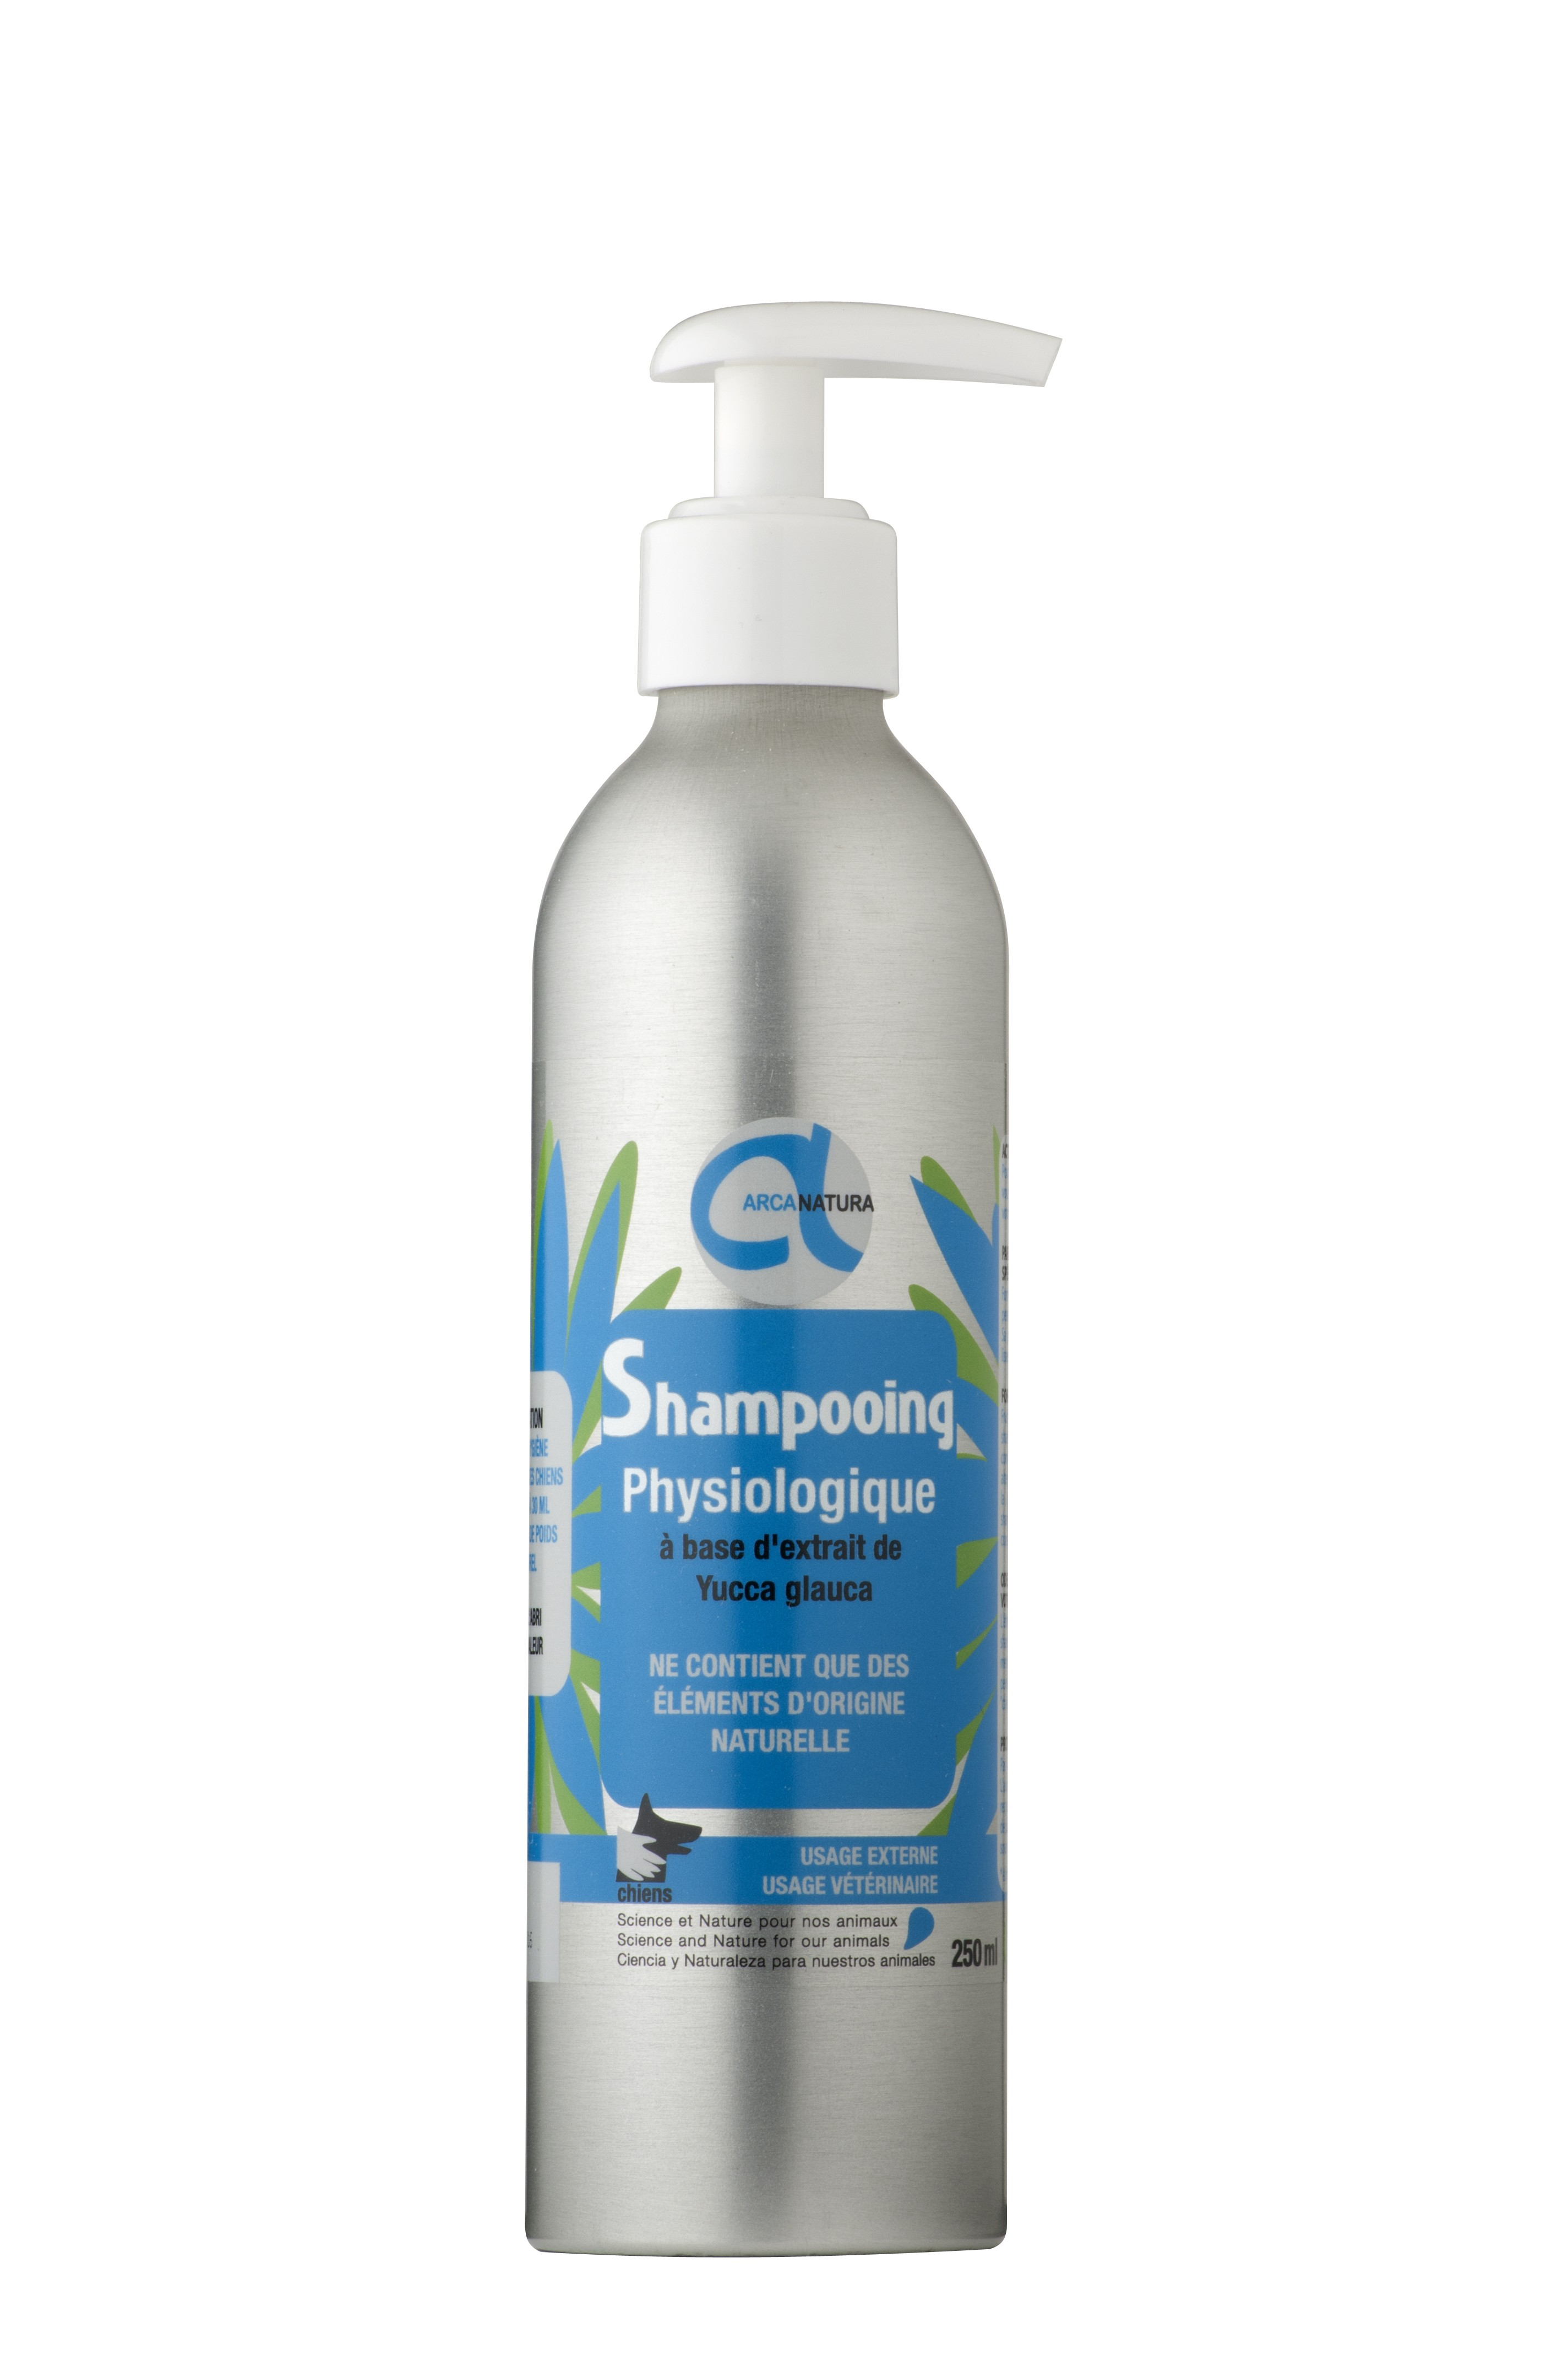 Shampooing physiologique